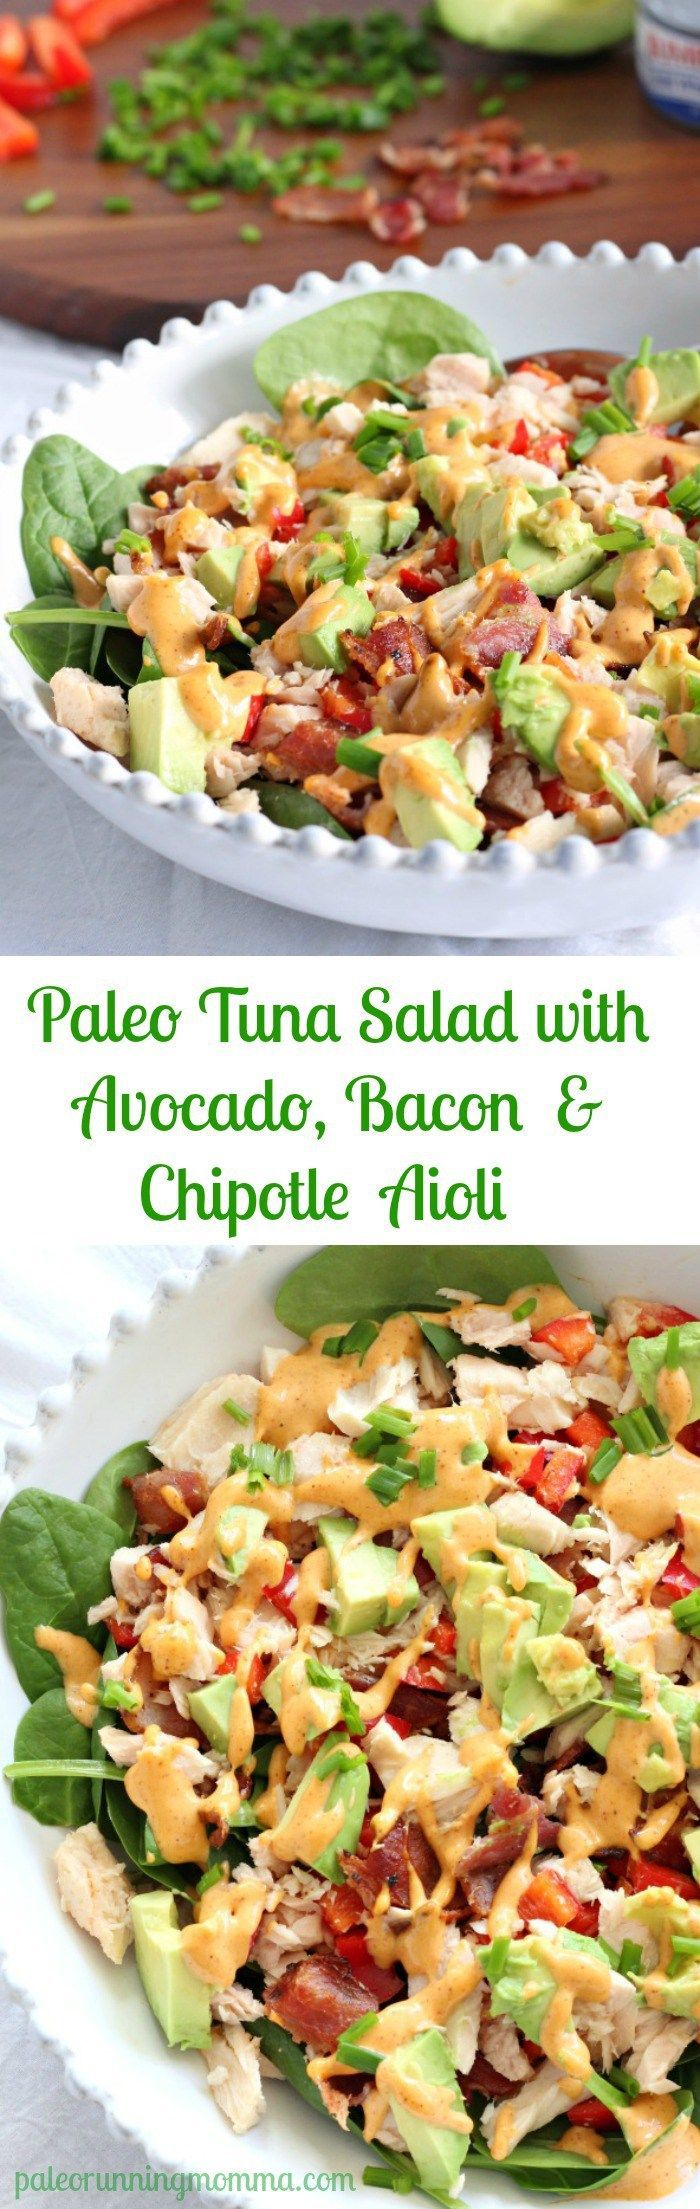 Paleo Tuna Salad with Avocado, Bacon and Chipotle aioli - Whole30, grain free, dairy free